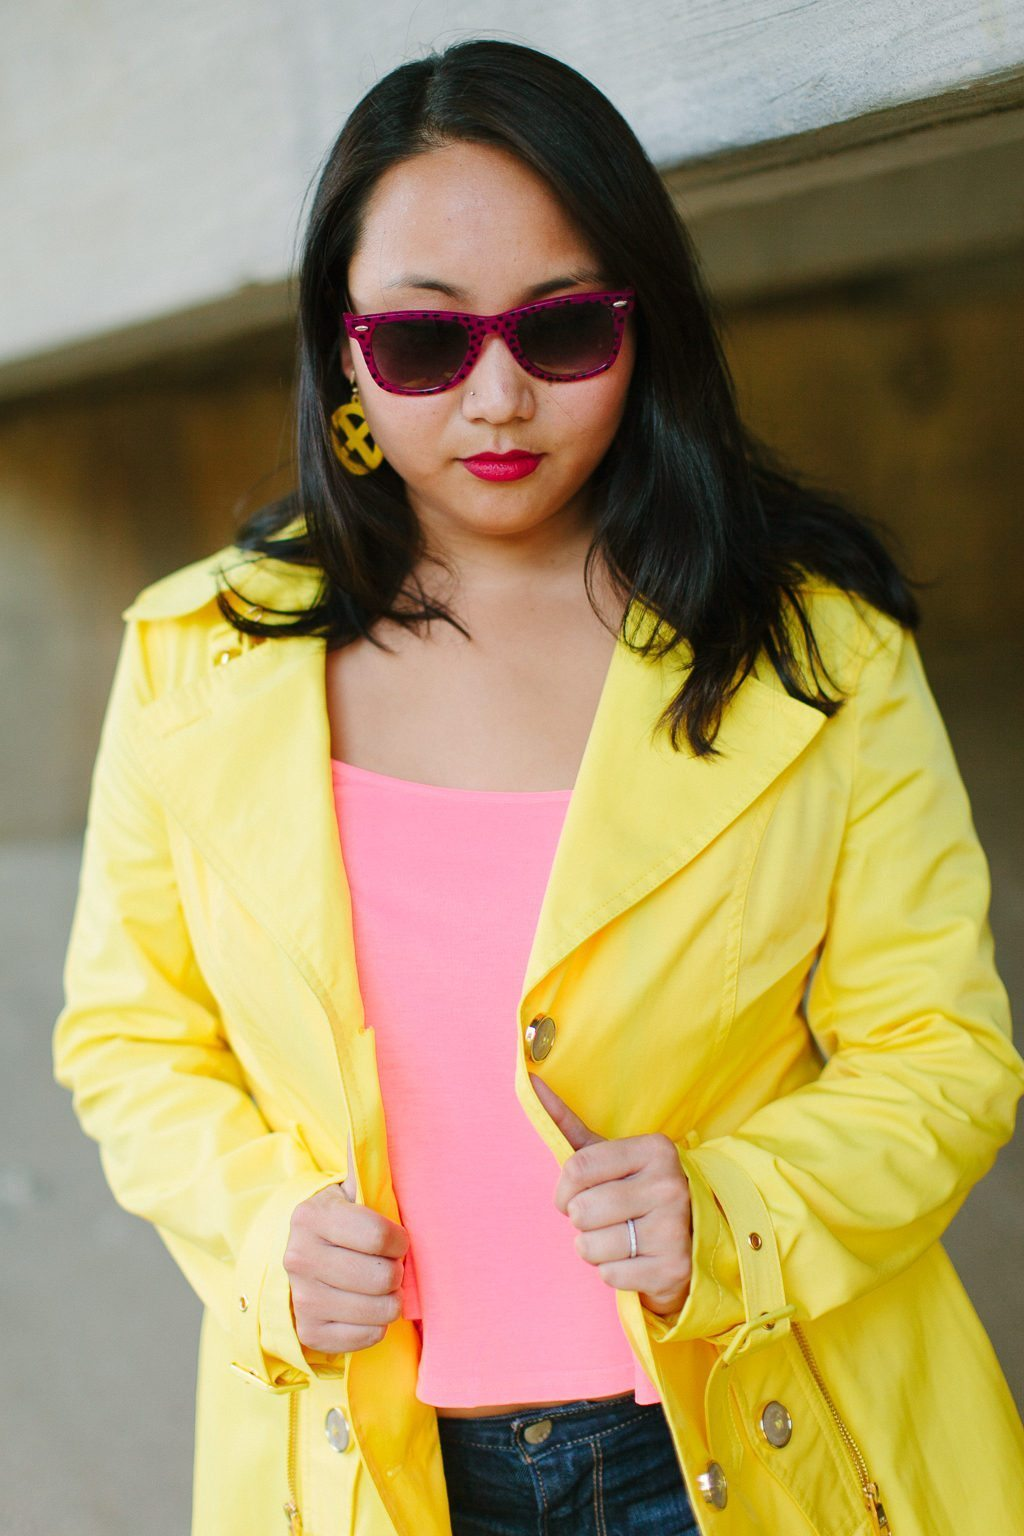 xmen-jubilee-cosplay-outfit-5609